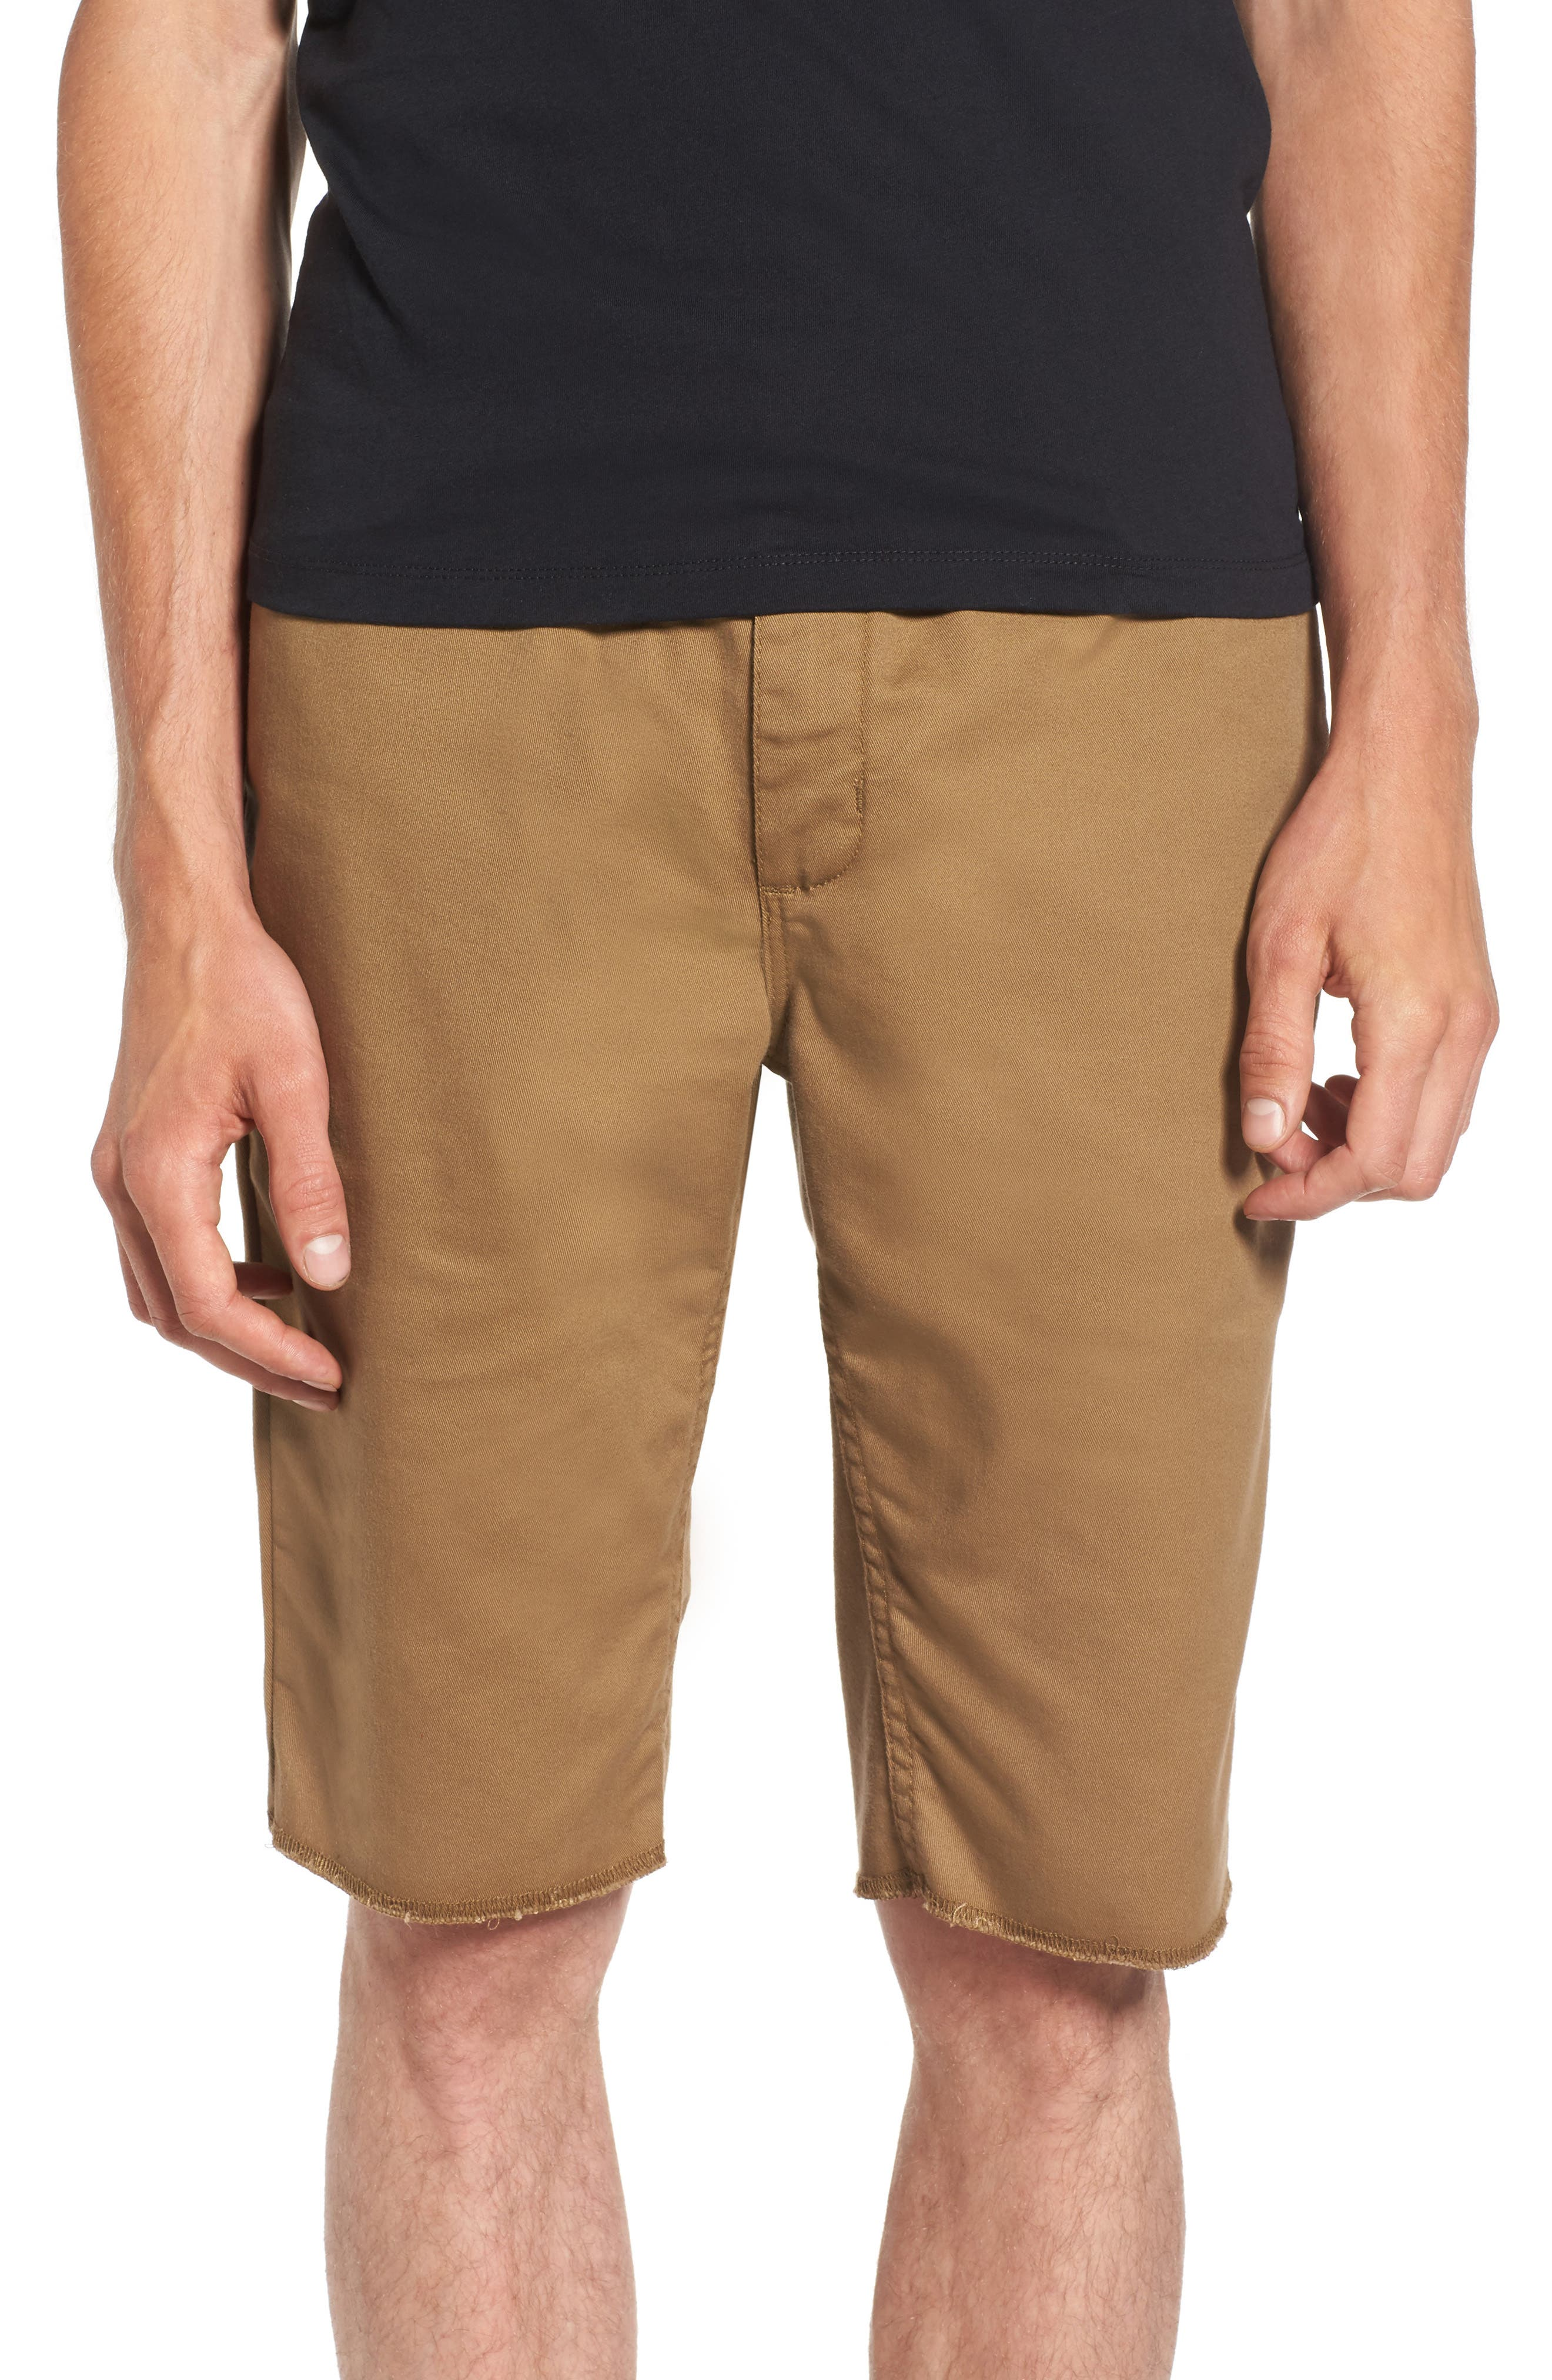 Covina II - Anthony Van Engelen Twill Shorts,                             Main thumbnail 1, color,                             DIRT